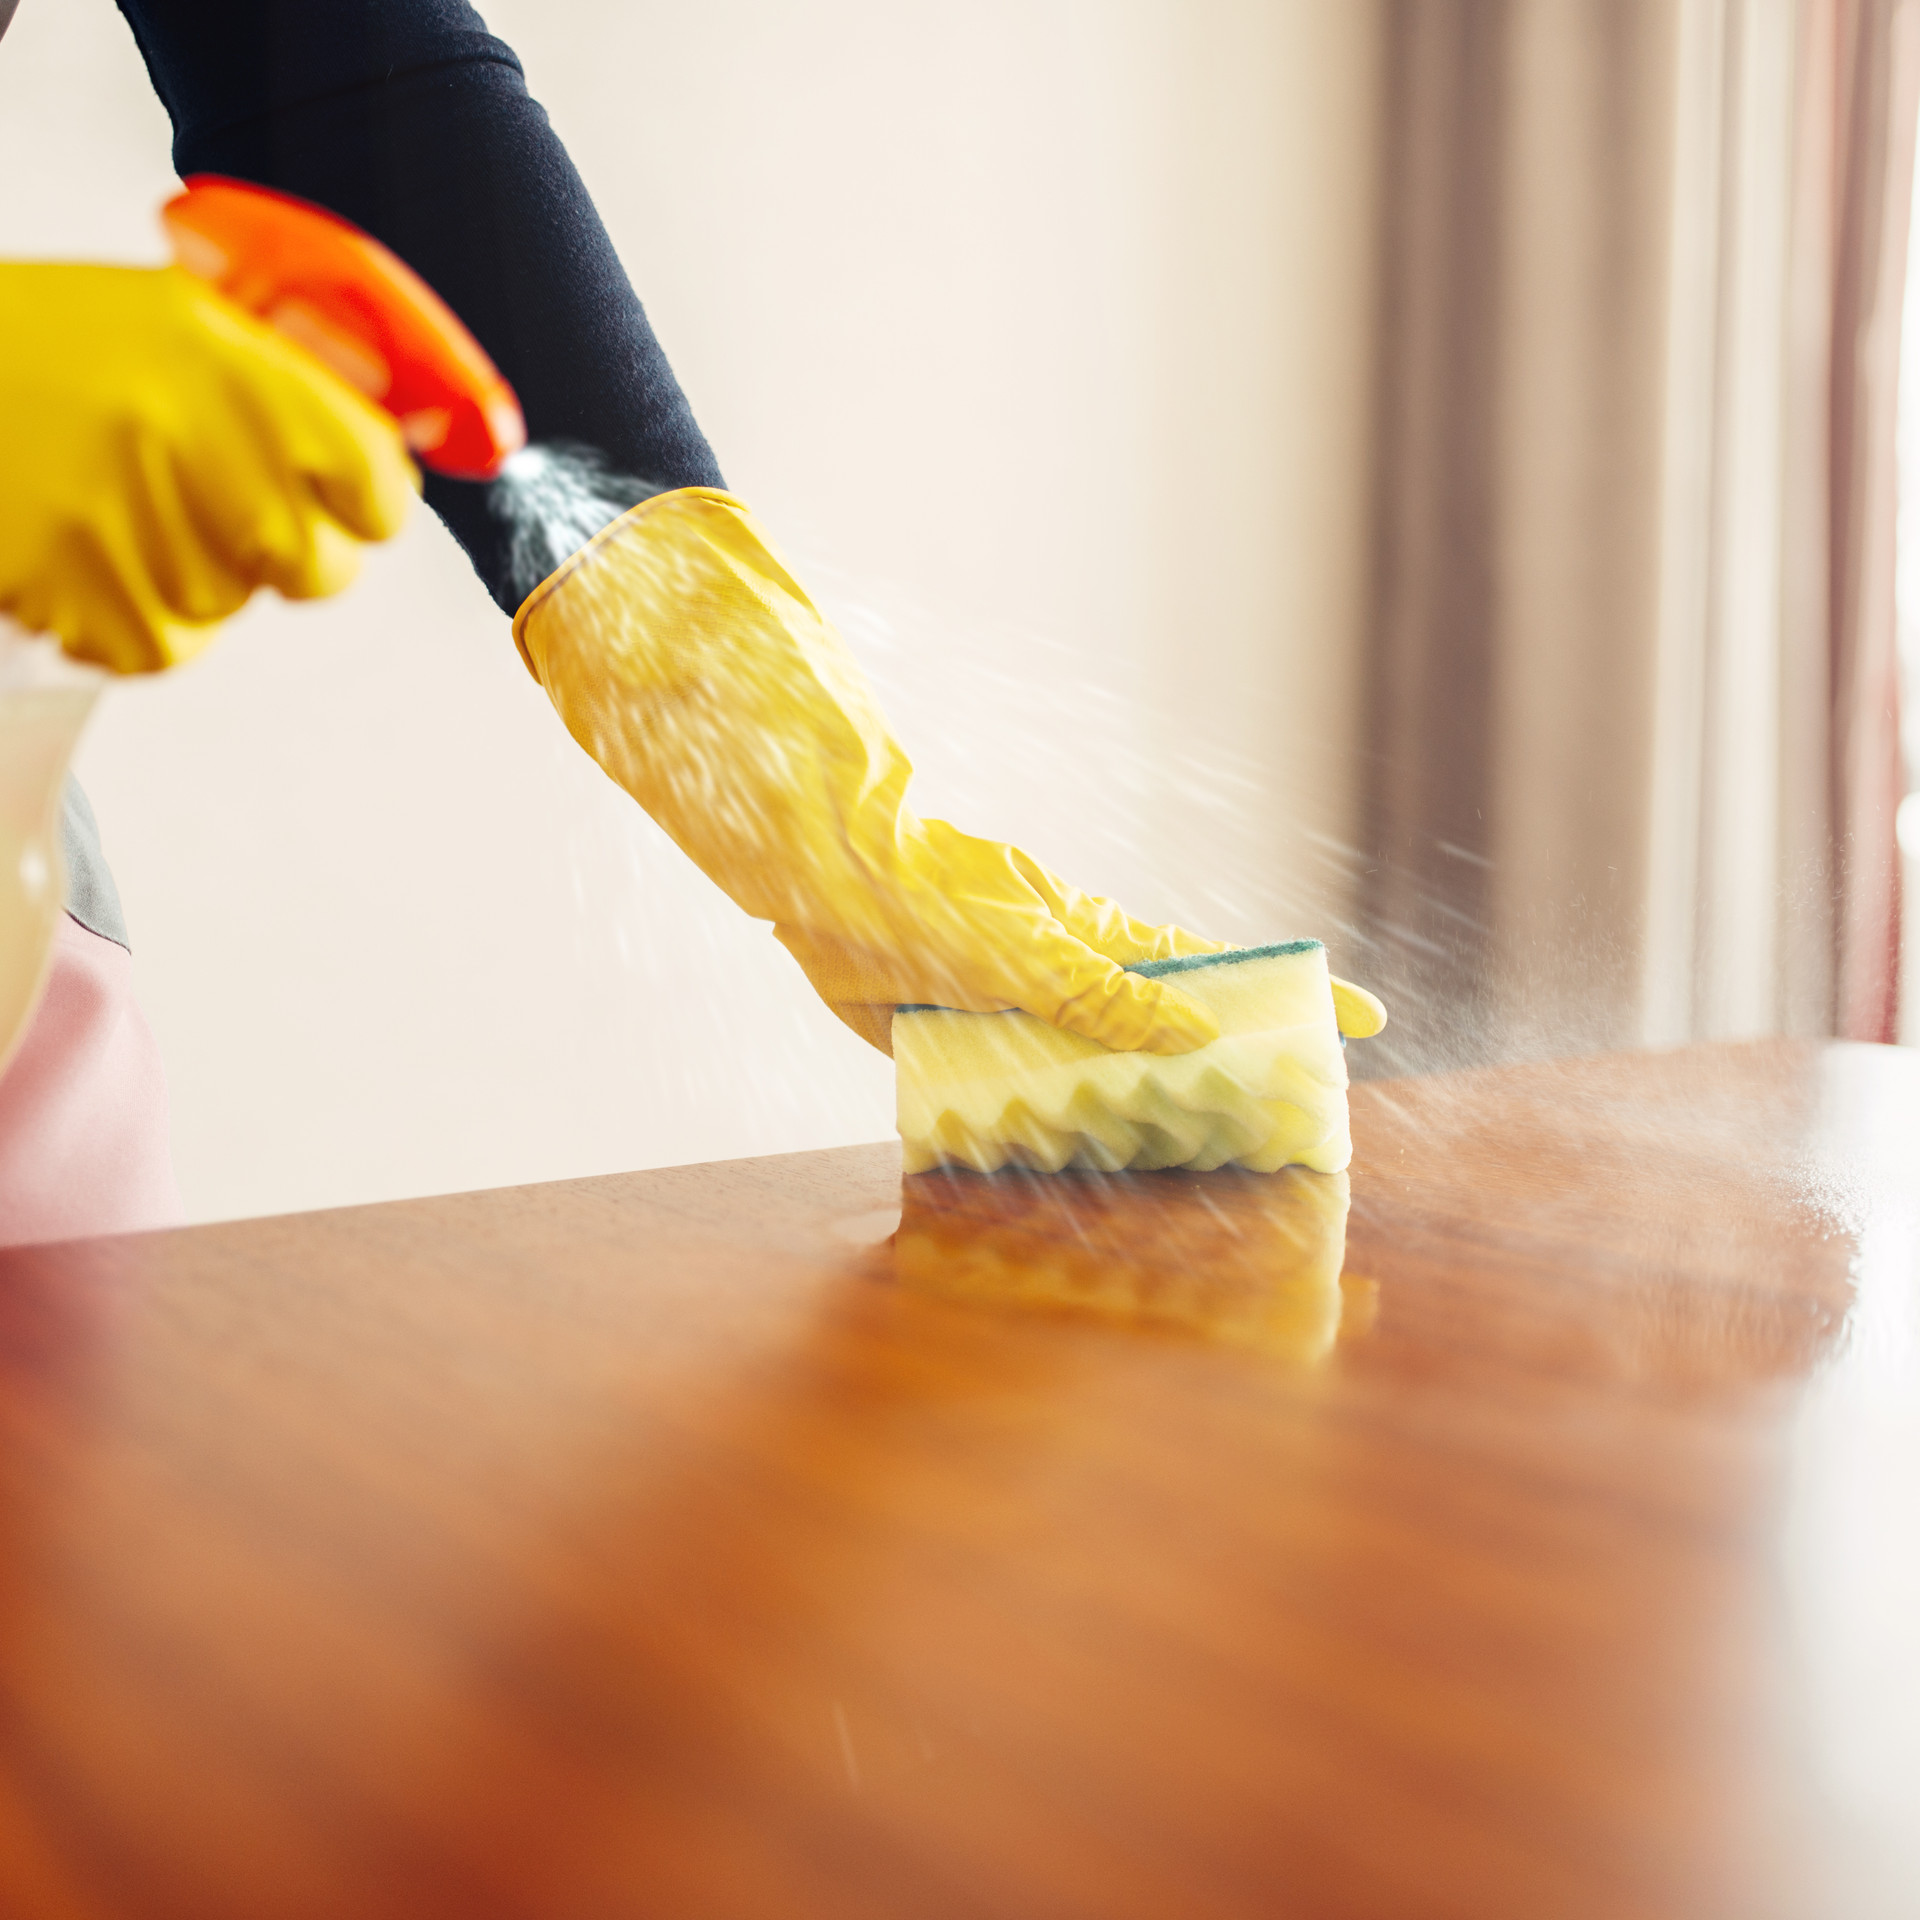 housemaid-hands-cleans-table-with-cleani